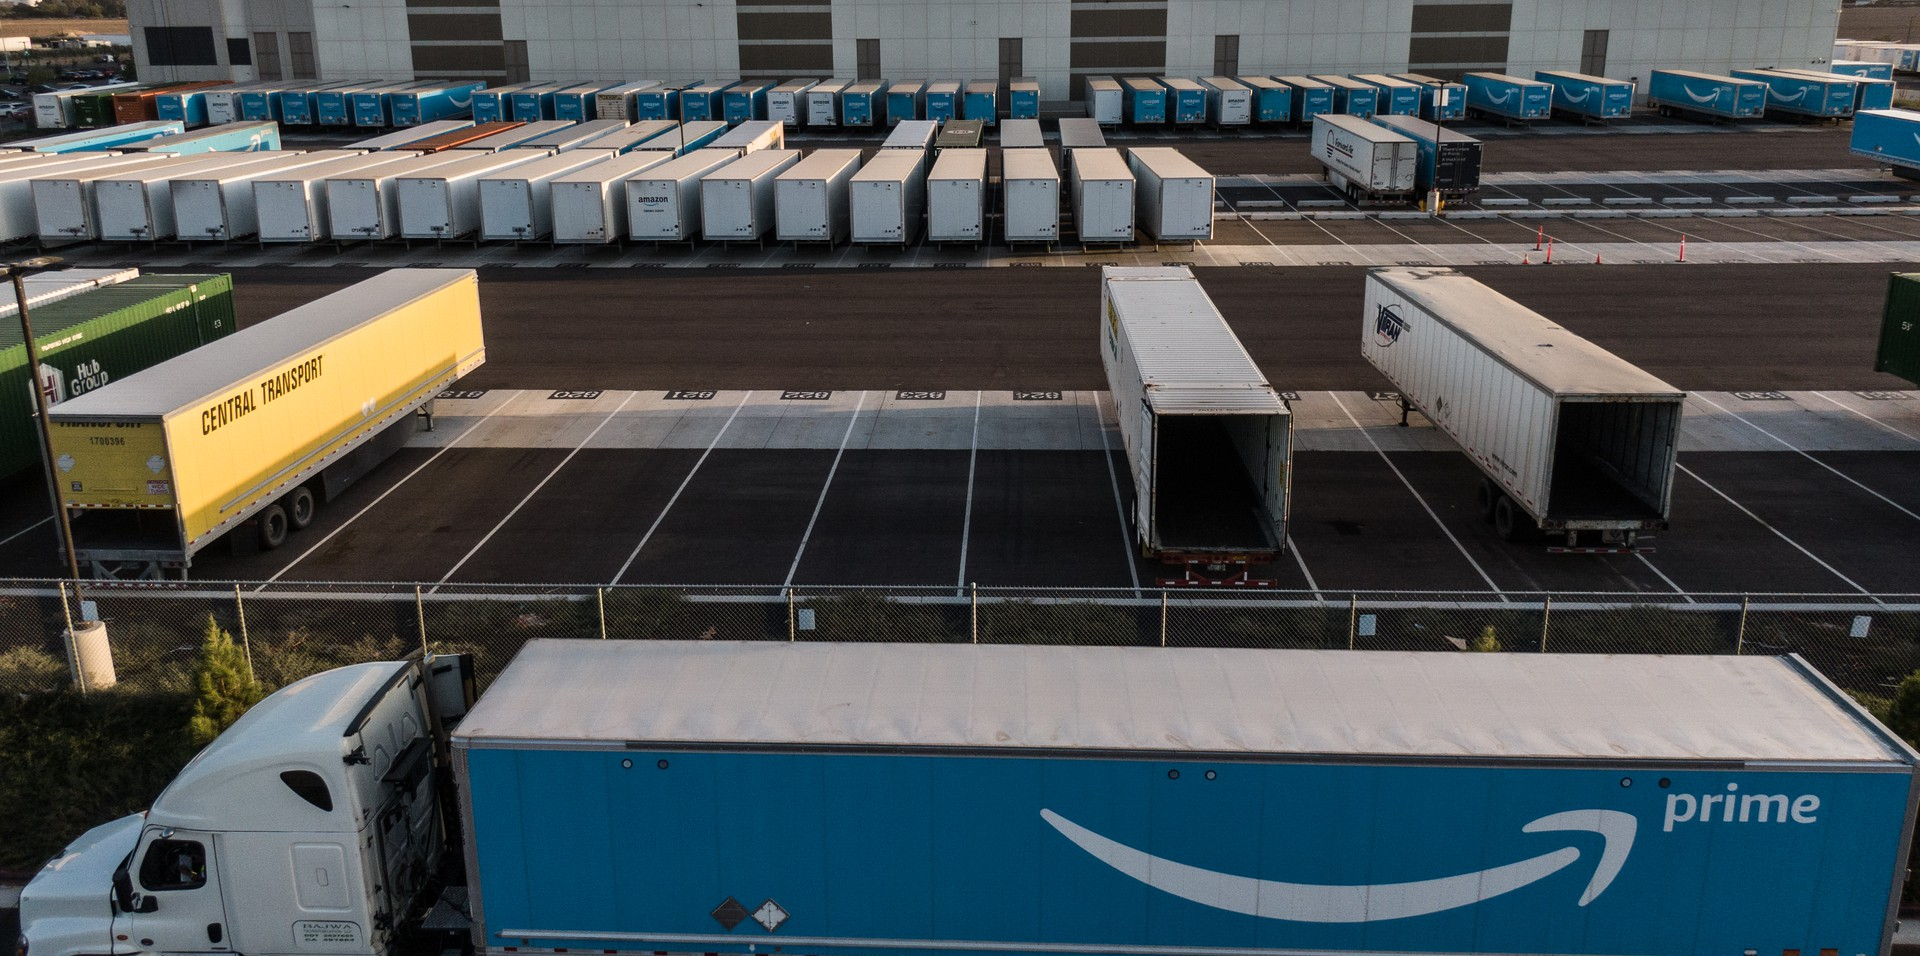 An amazon parking lot